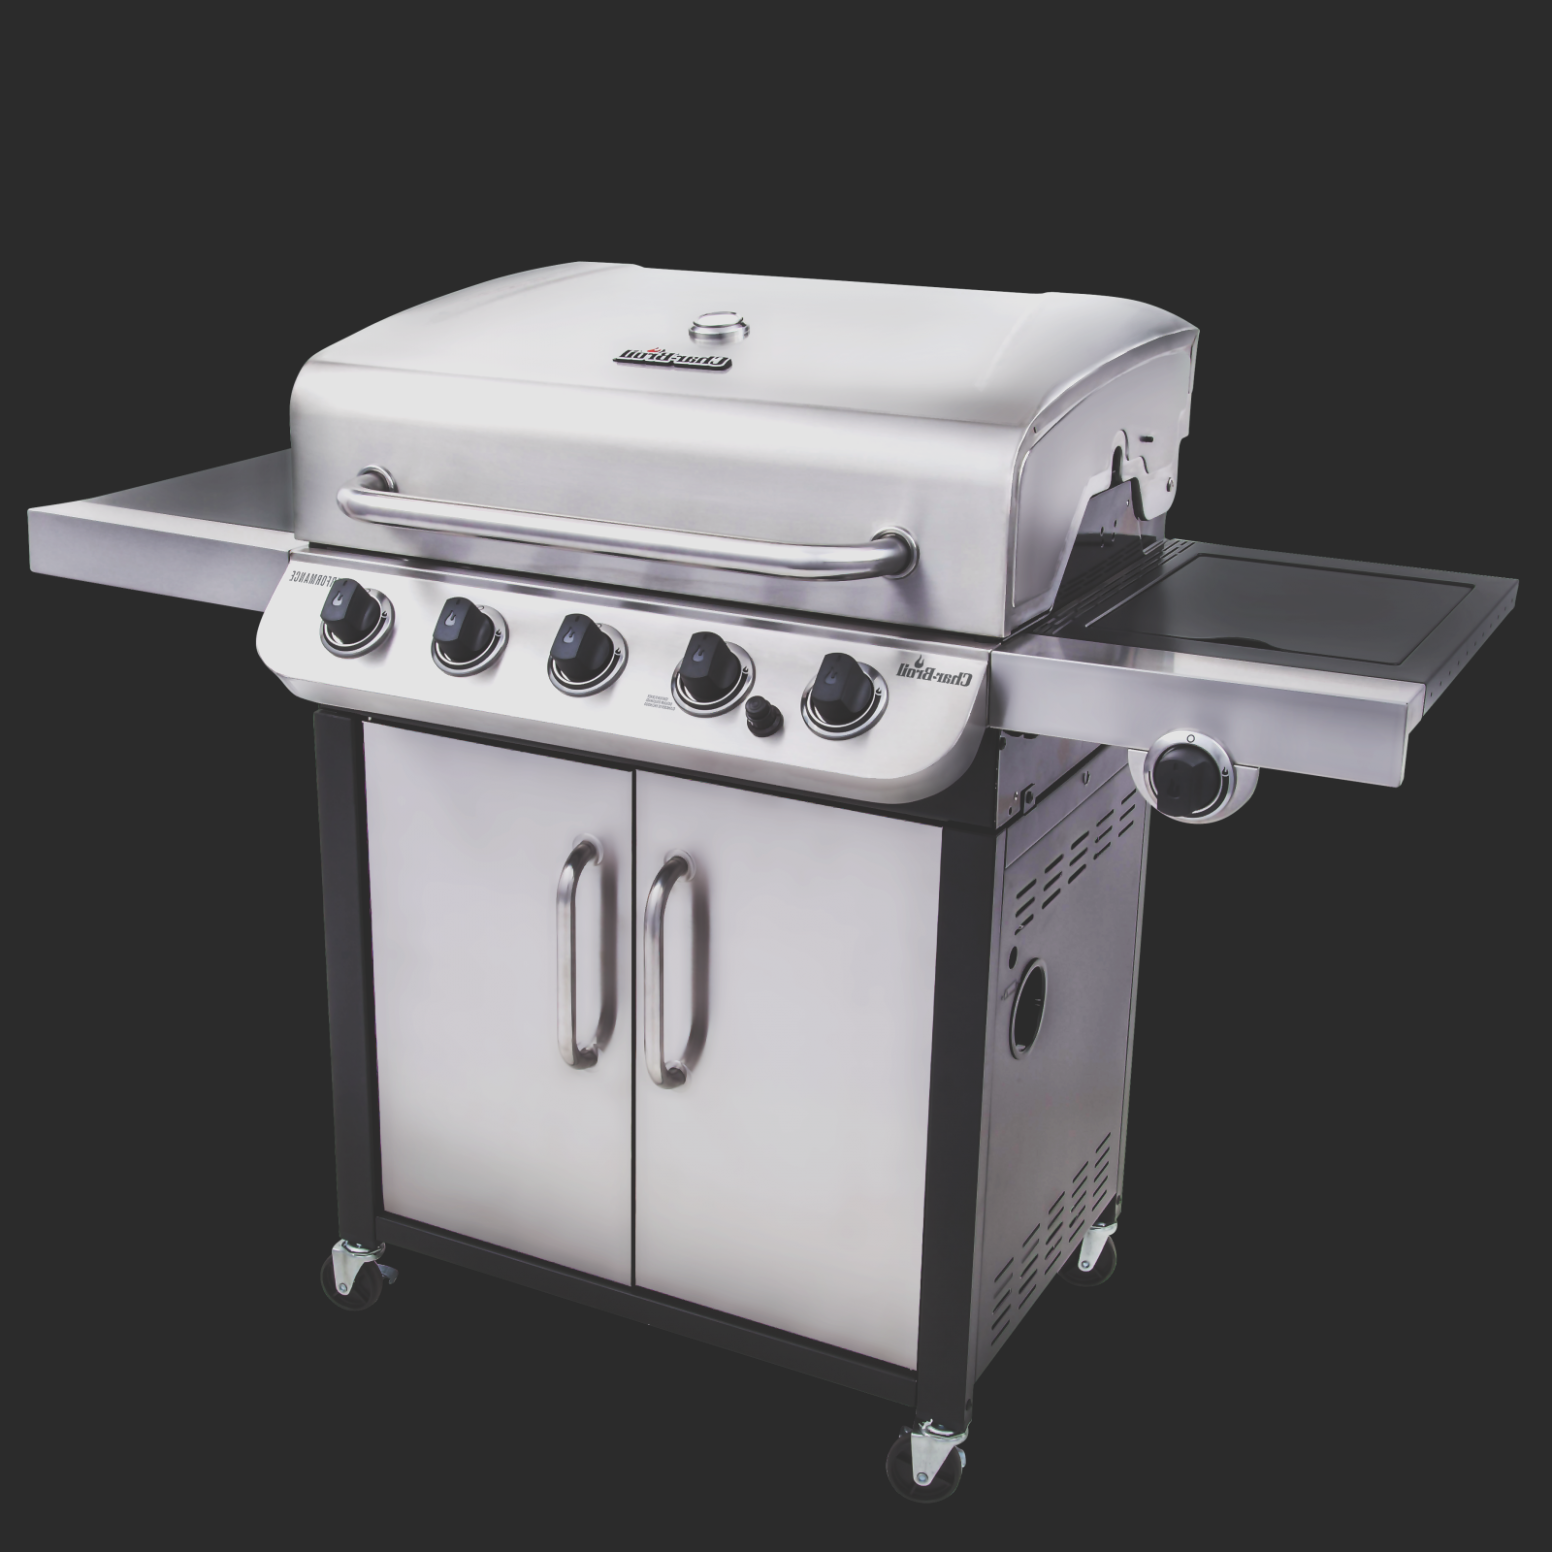 Charbroil Performance 1 Burner Cabinet Grill